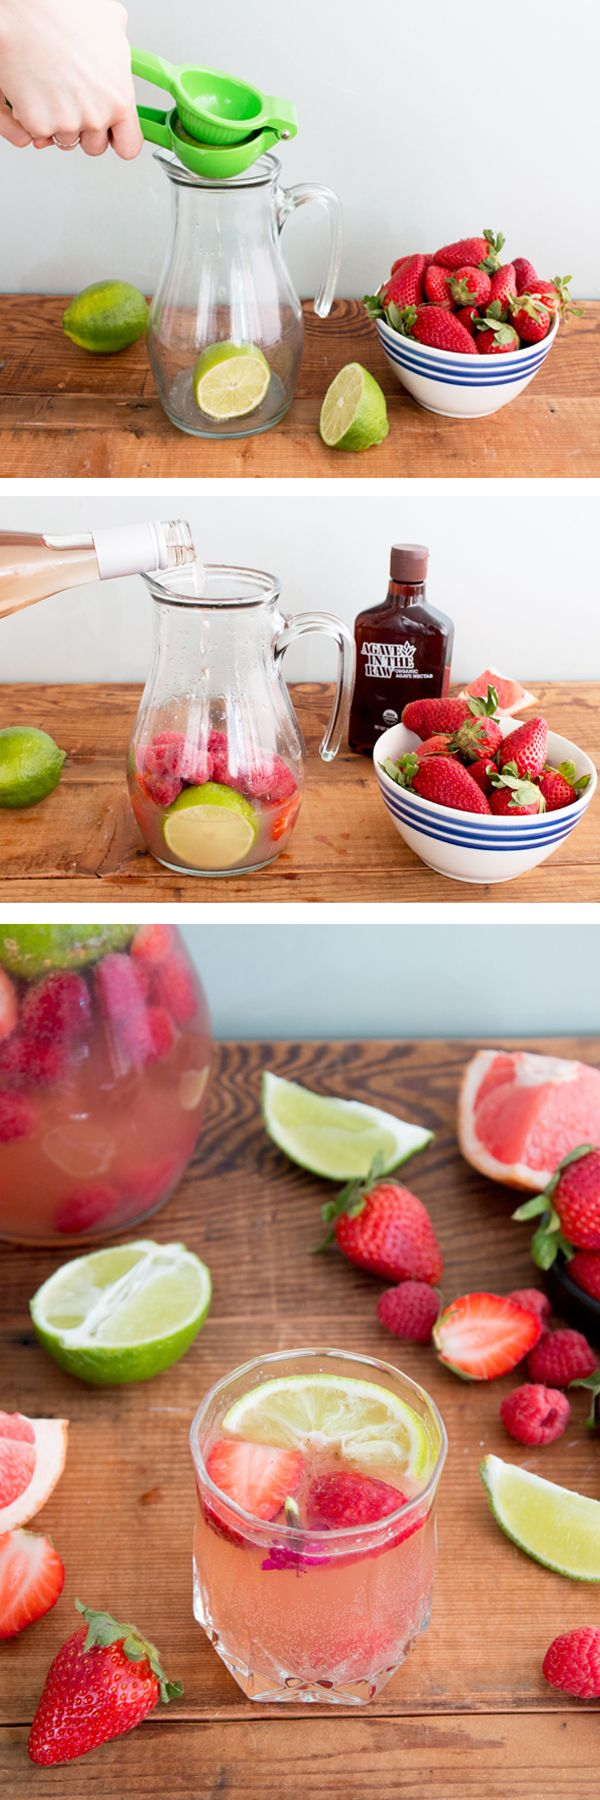 """Say """"yes way"""" to a glass of this Sparkling Rosé Sangria made with Agave In The Raw®. Vibrant summer fruits (grapefruit, strawberries, raspberries and lime) mingle with tequila and rosé wine for a light, refreshing cocktail. Be sure to add this sangria recipe to your Cinco de Mayo and summer party menus for a drink all adult guests will enjoy!"""